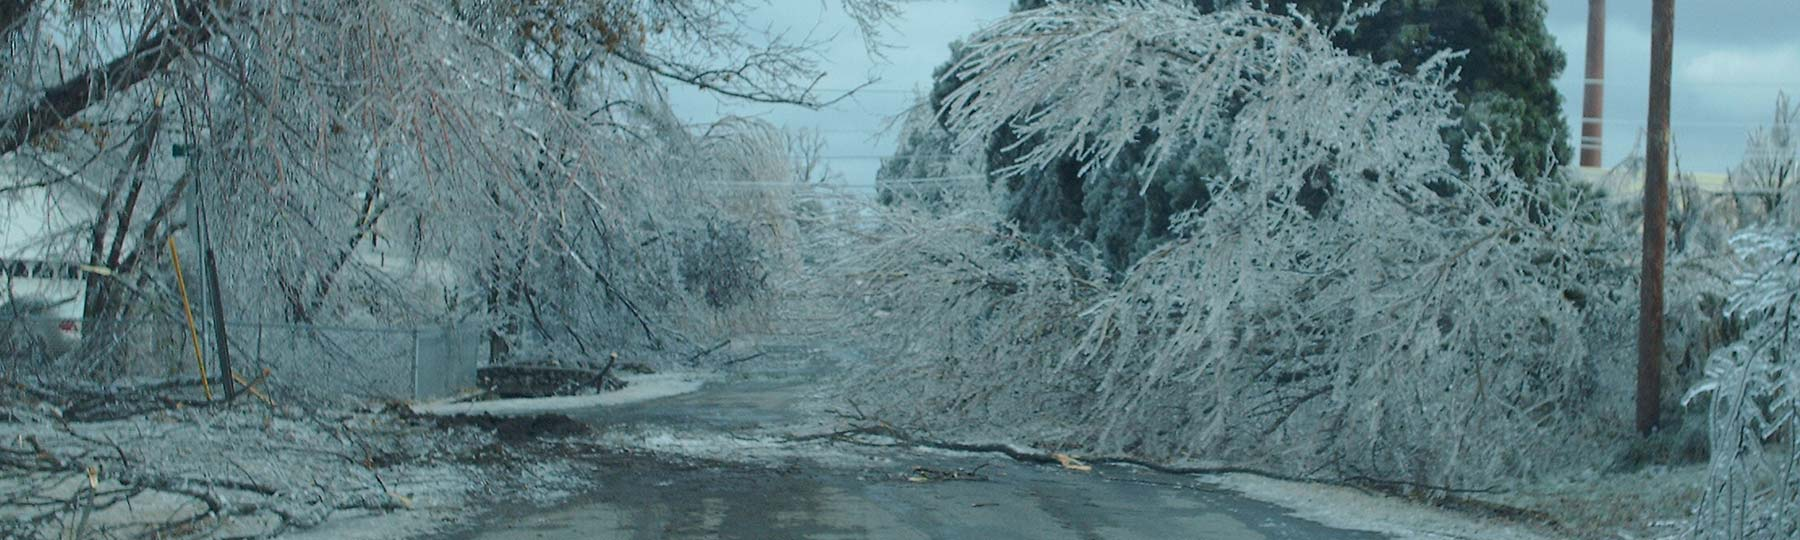 A heavy ice-covered tree branch blocking the road